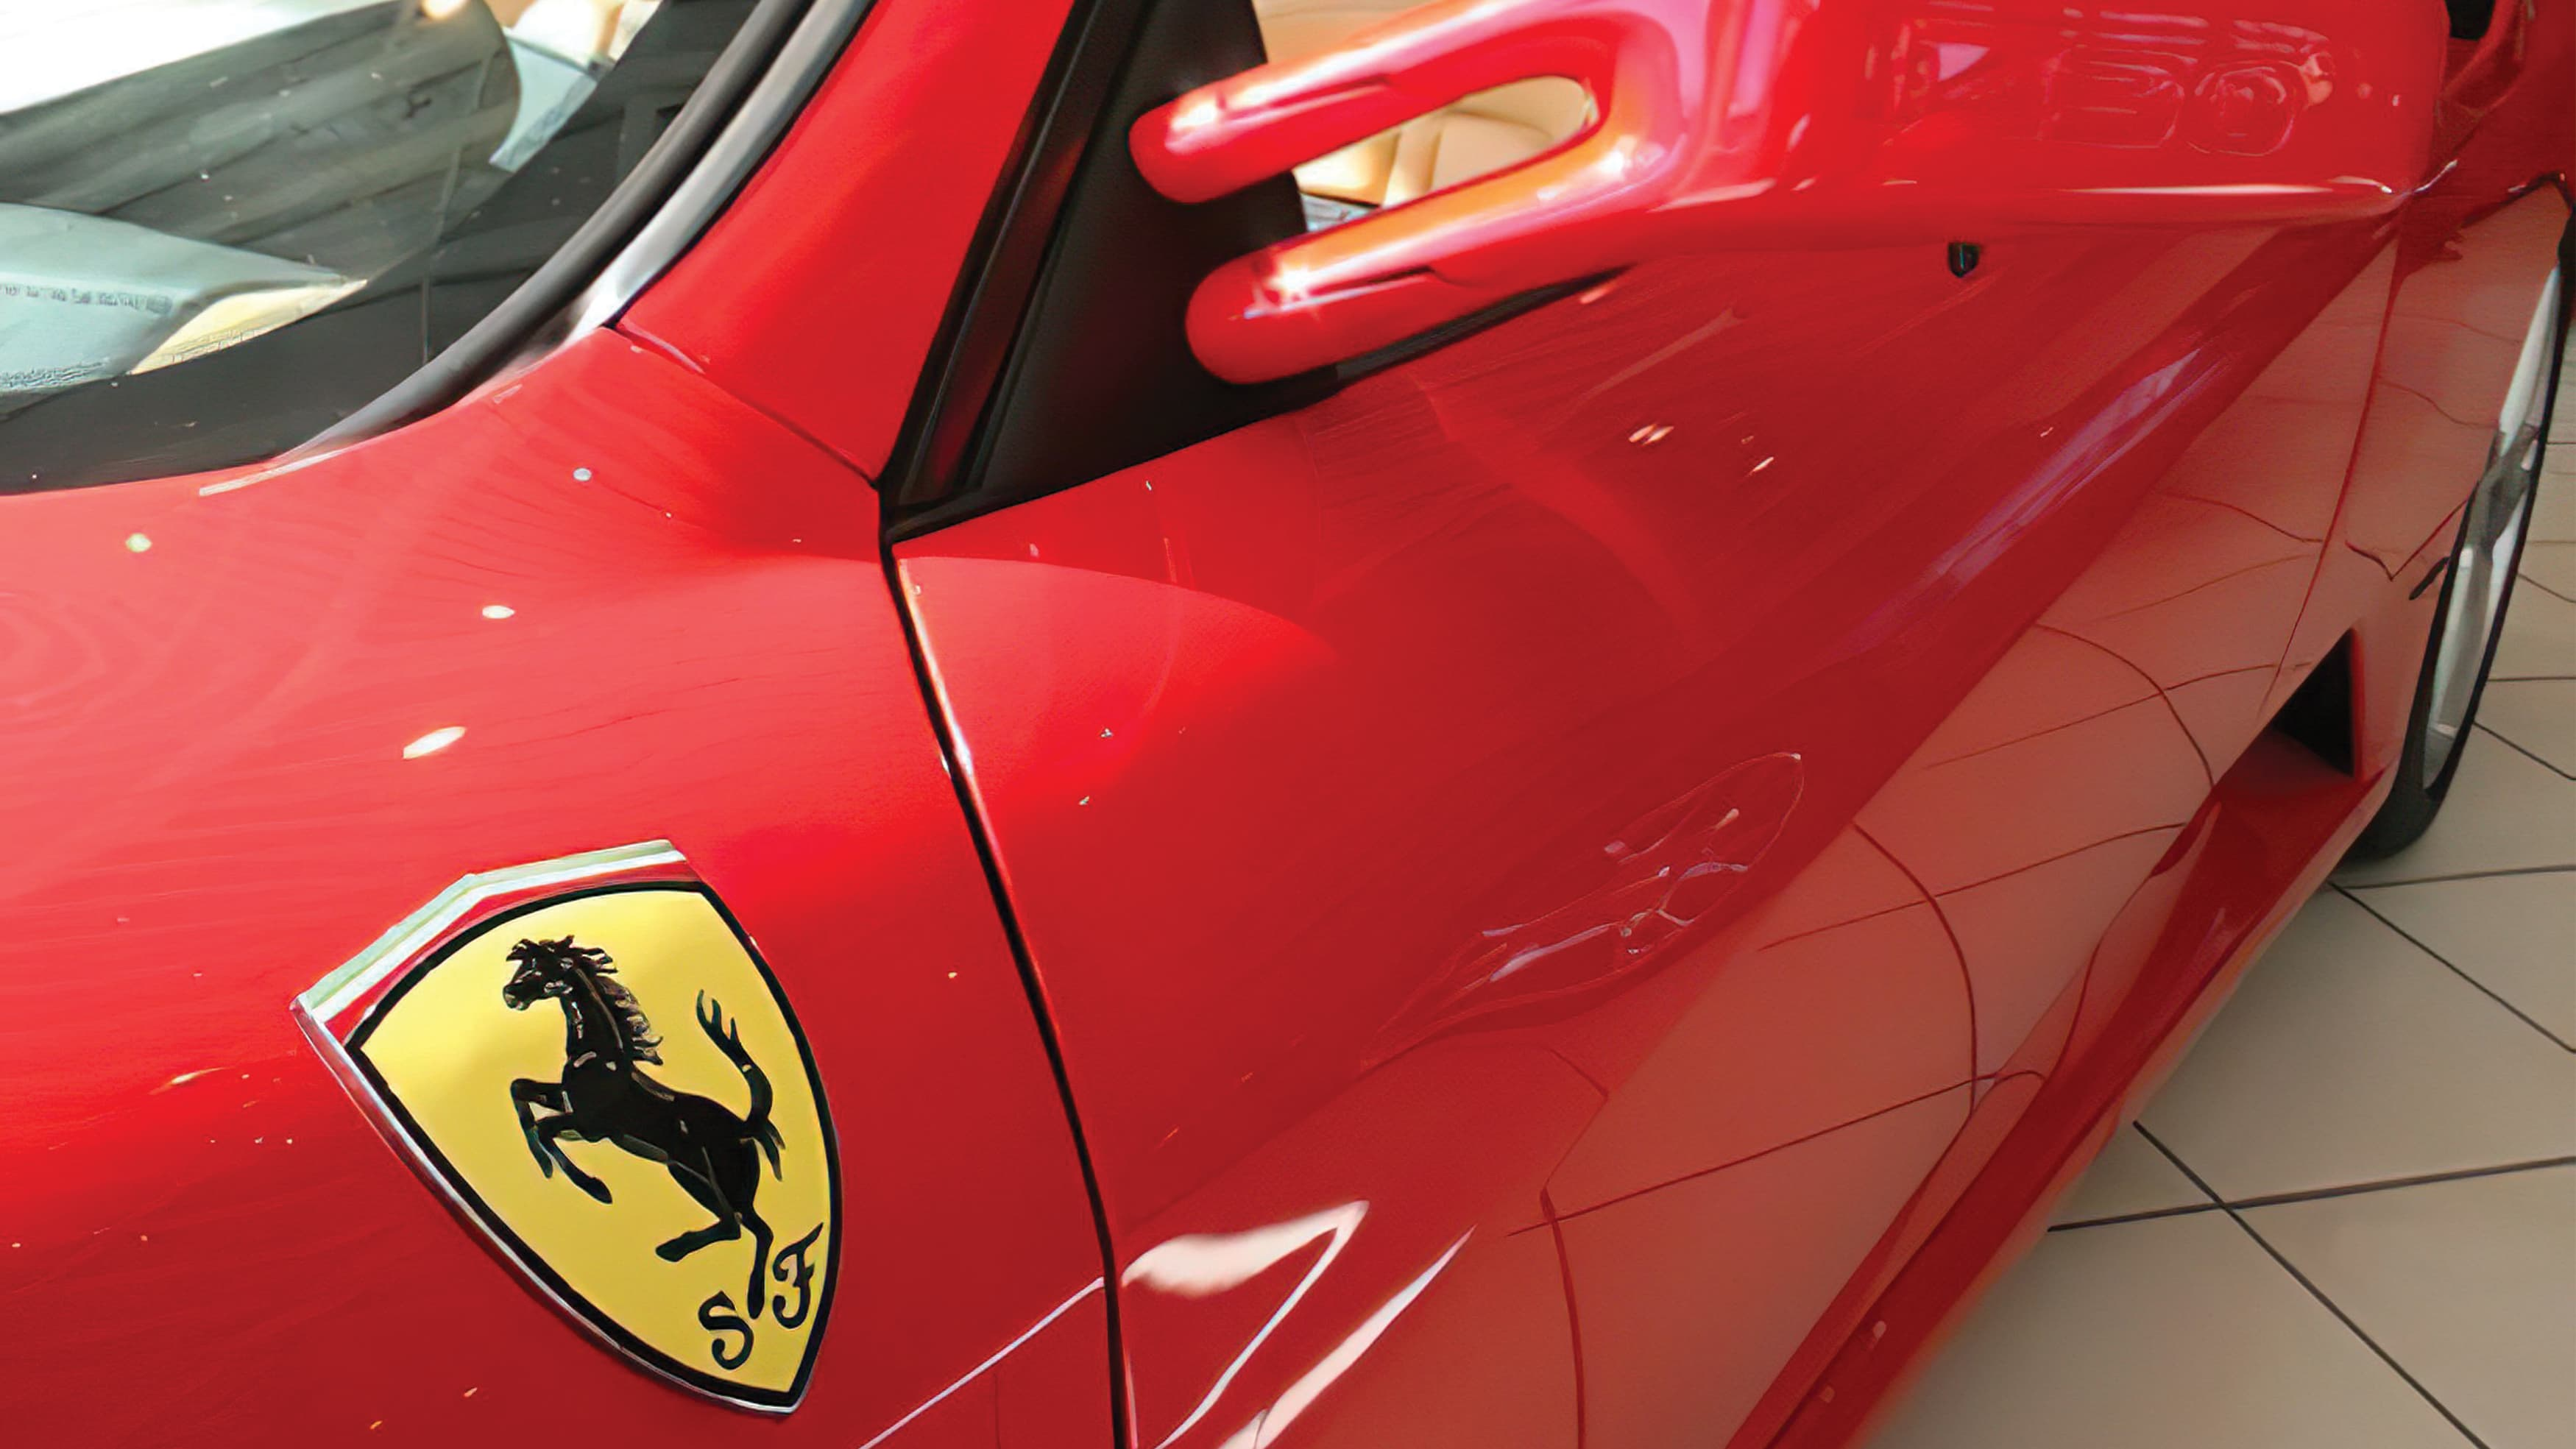 Detail photograph of a red ferrari with the classic Ferrari racing badge.